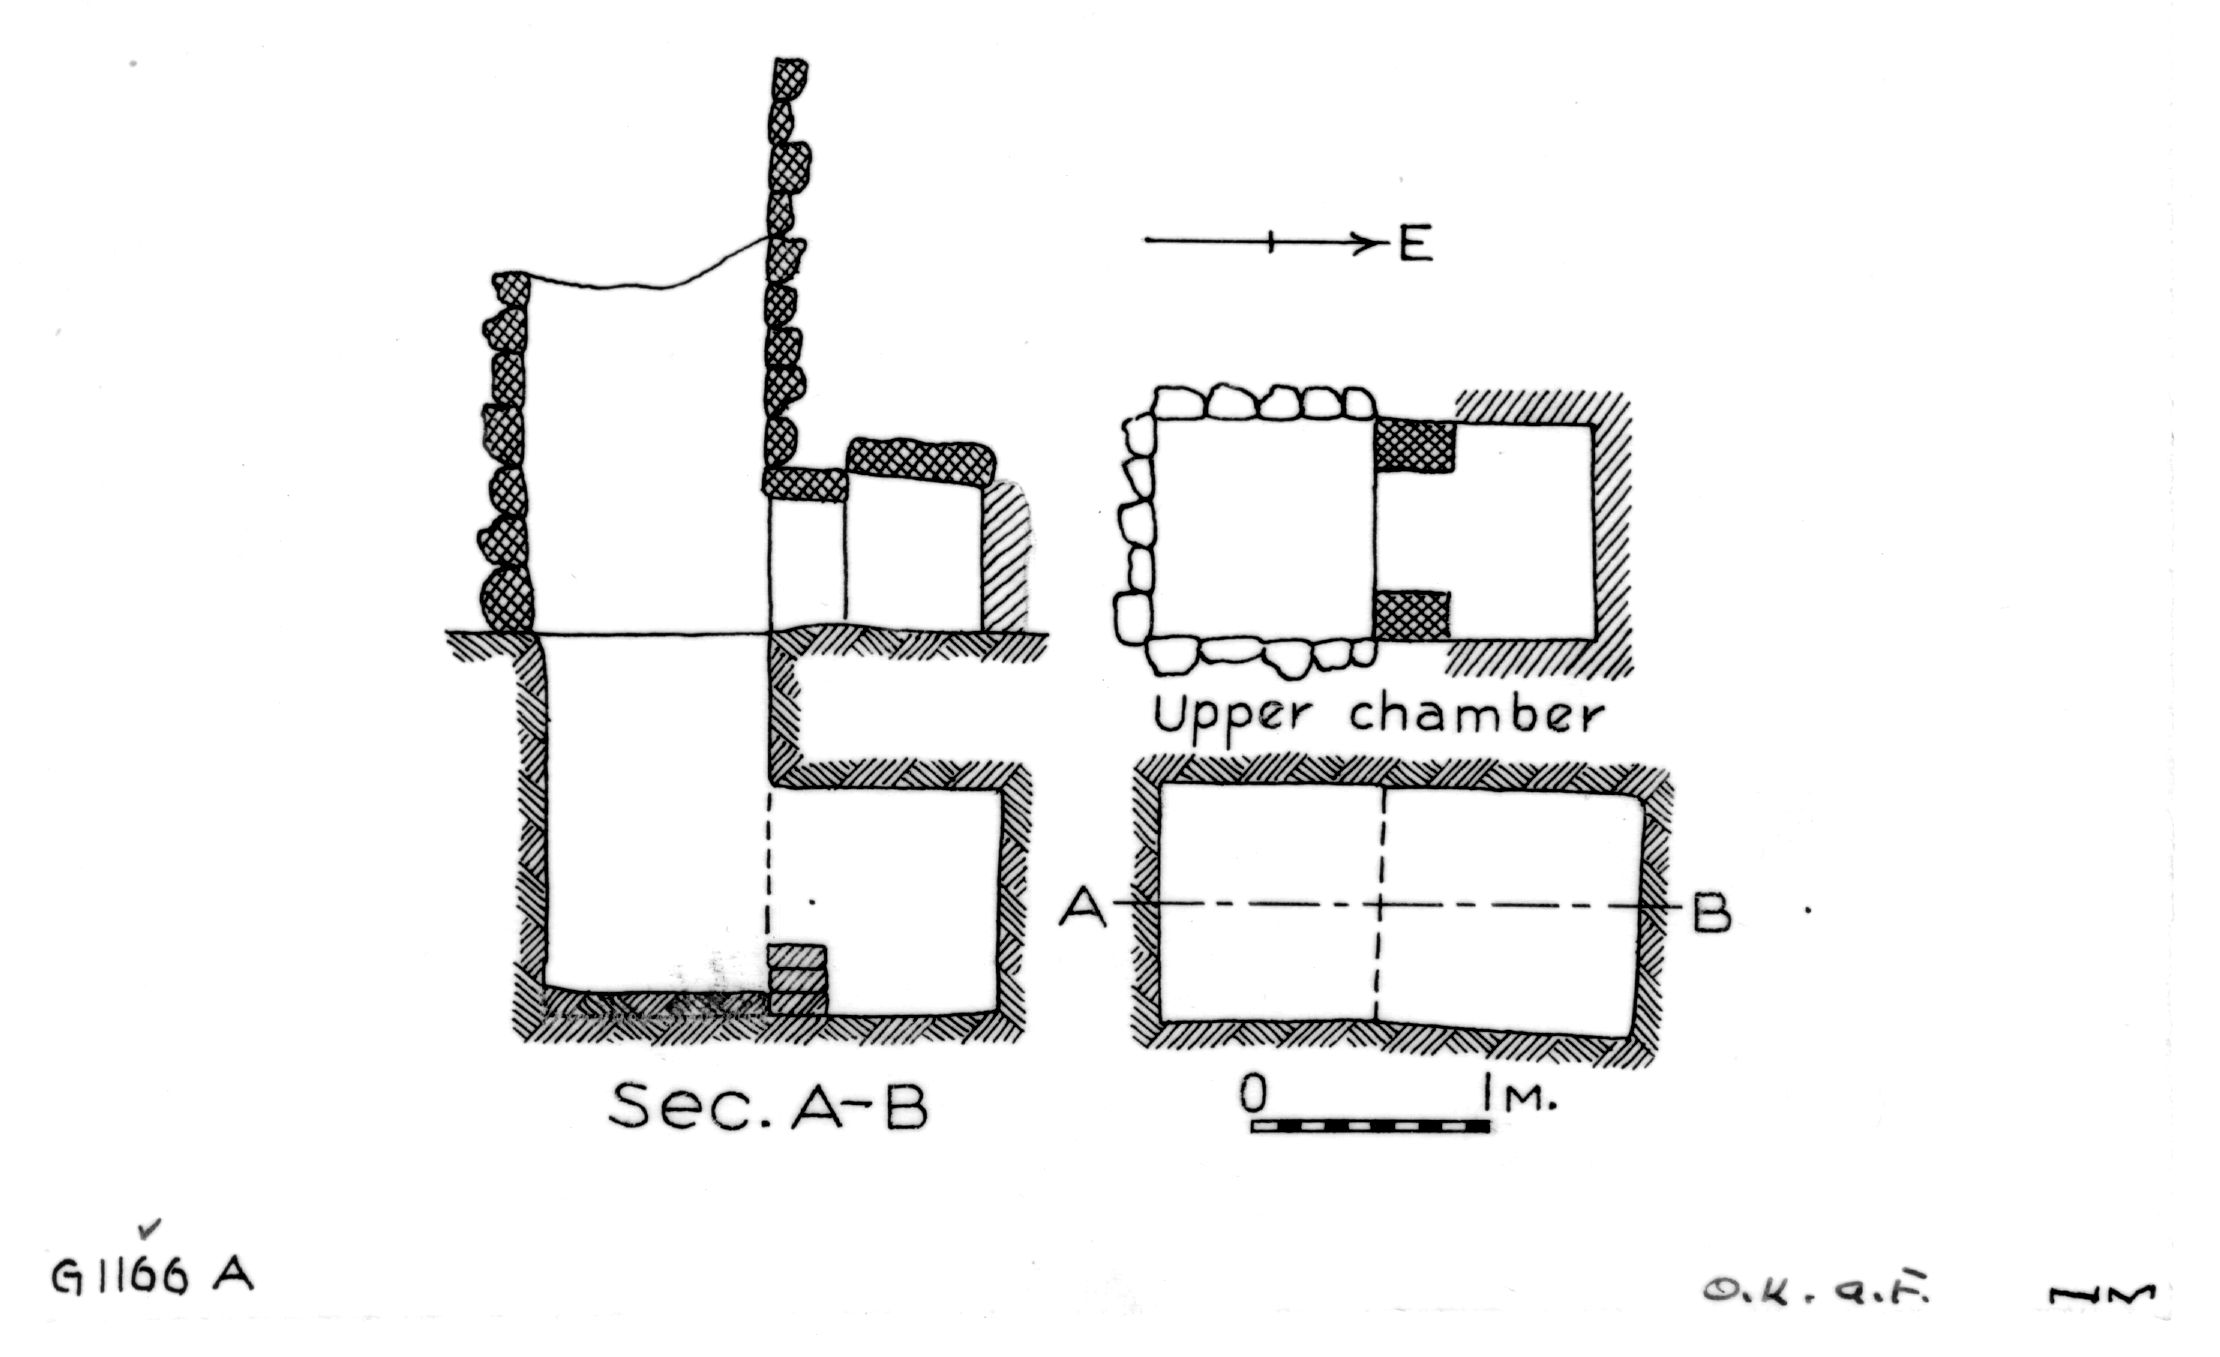 Maps and plans: G 1163+1166: G 1166, Shaft A